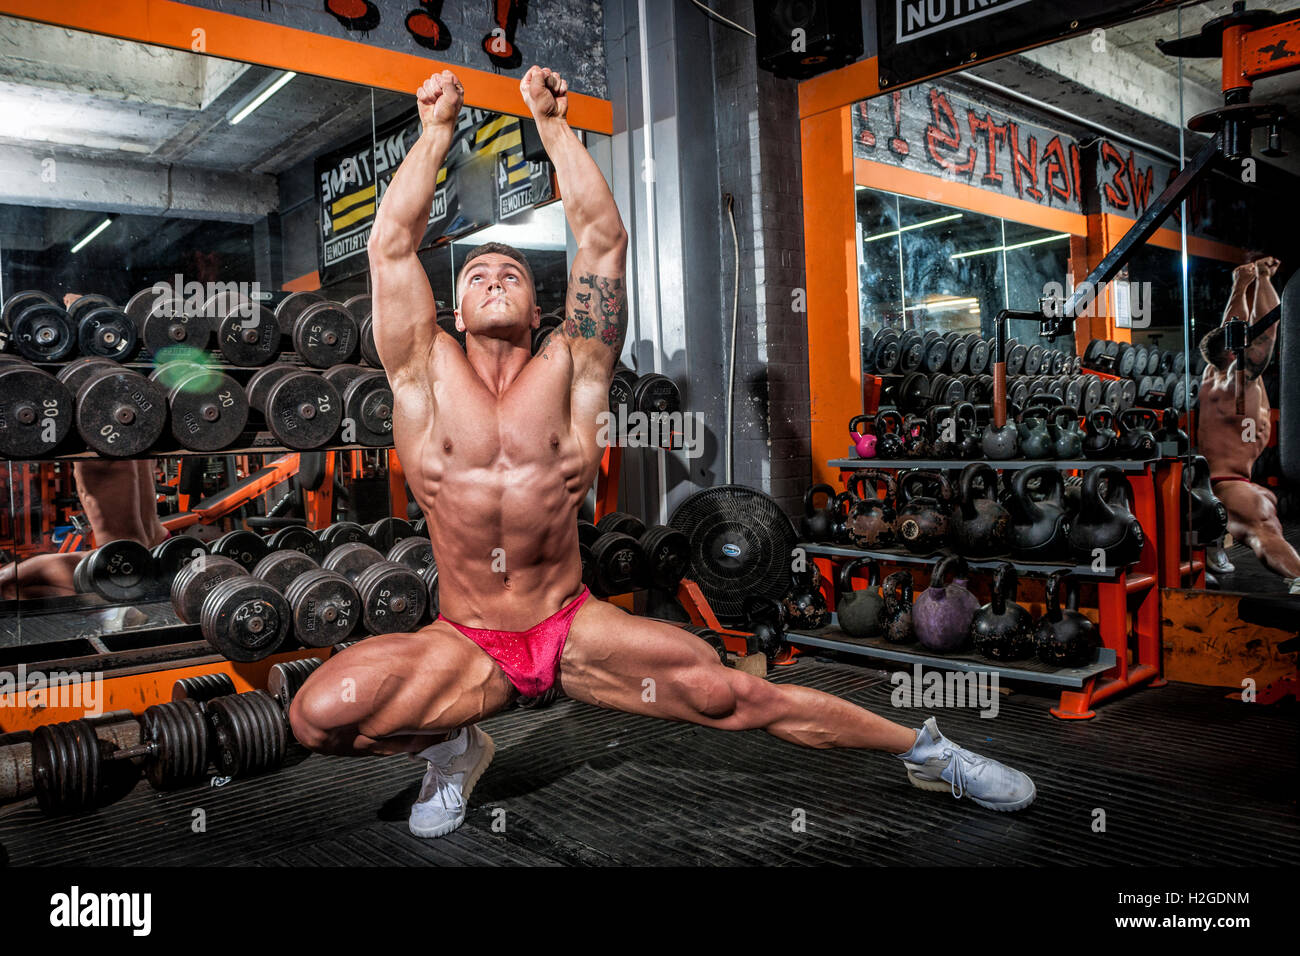 bodybuilder doing competition poses wearing a posing pouch and showing defined muscles - Stock Image